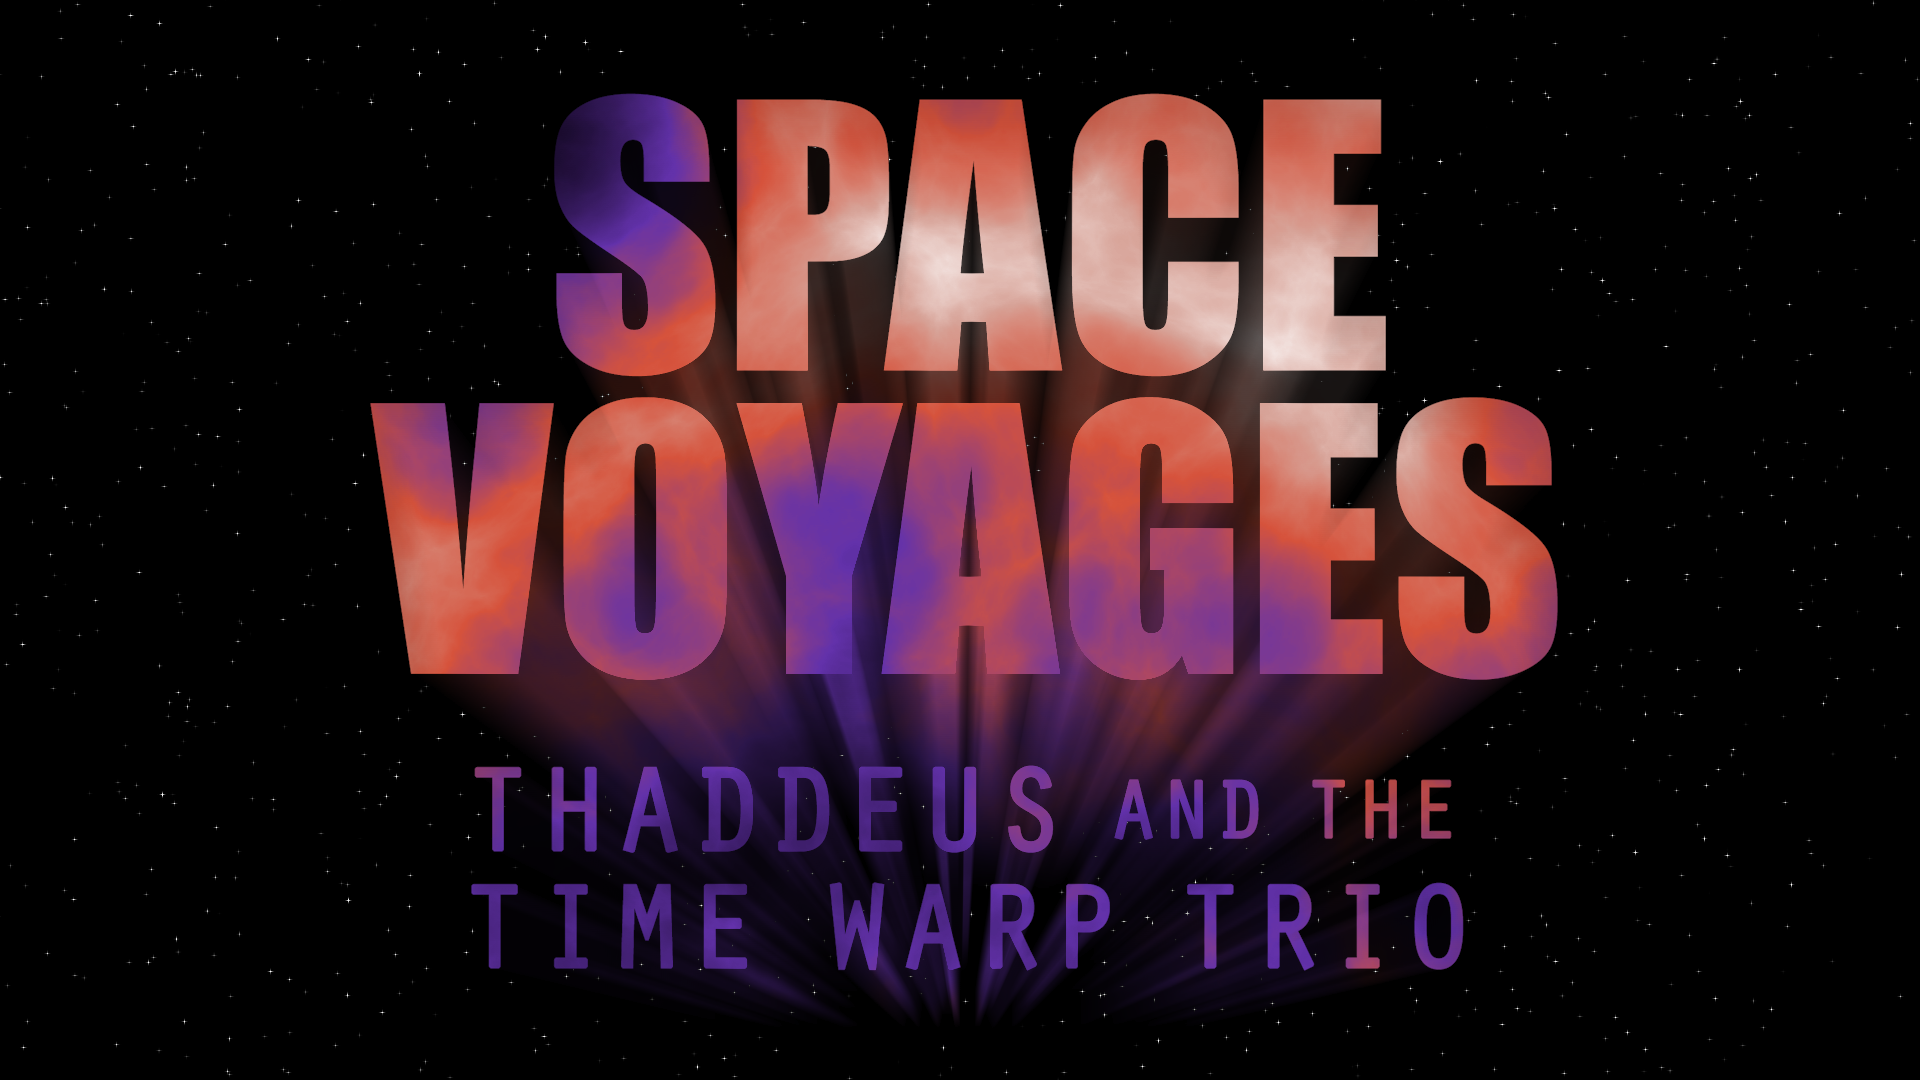 space voyages thaddeus and the time warp trio youtube series